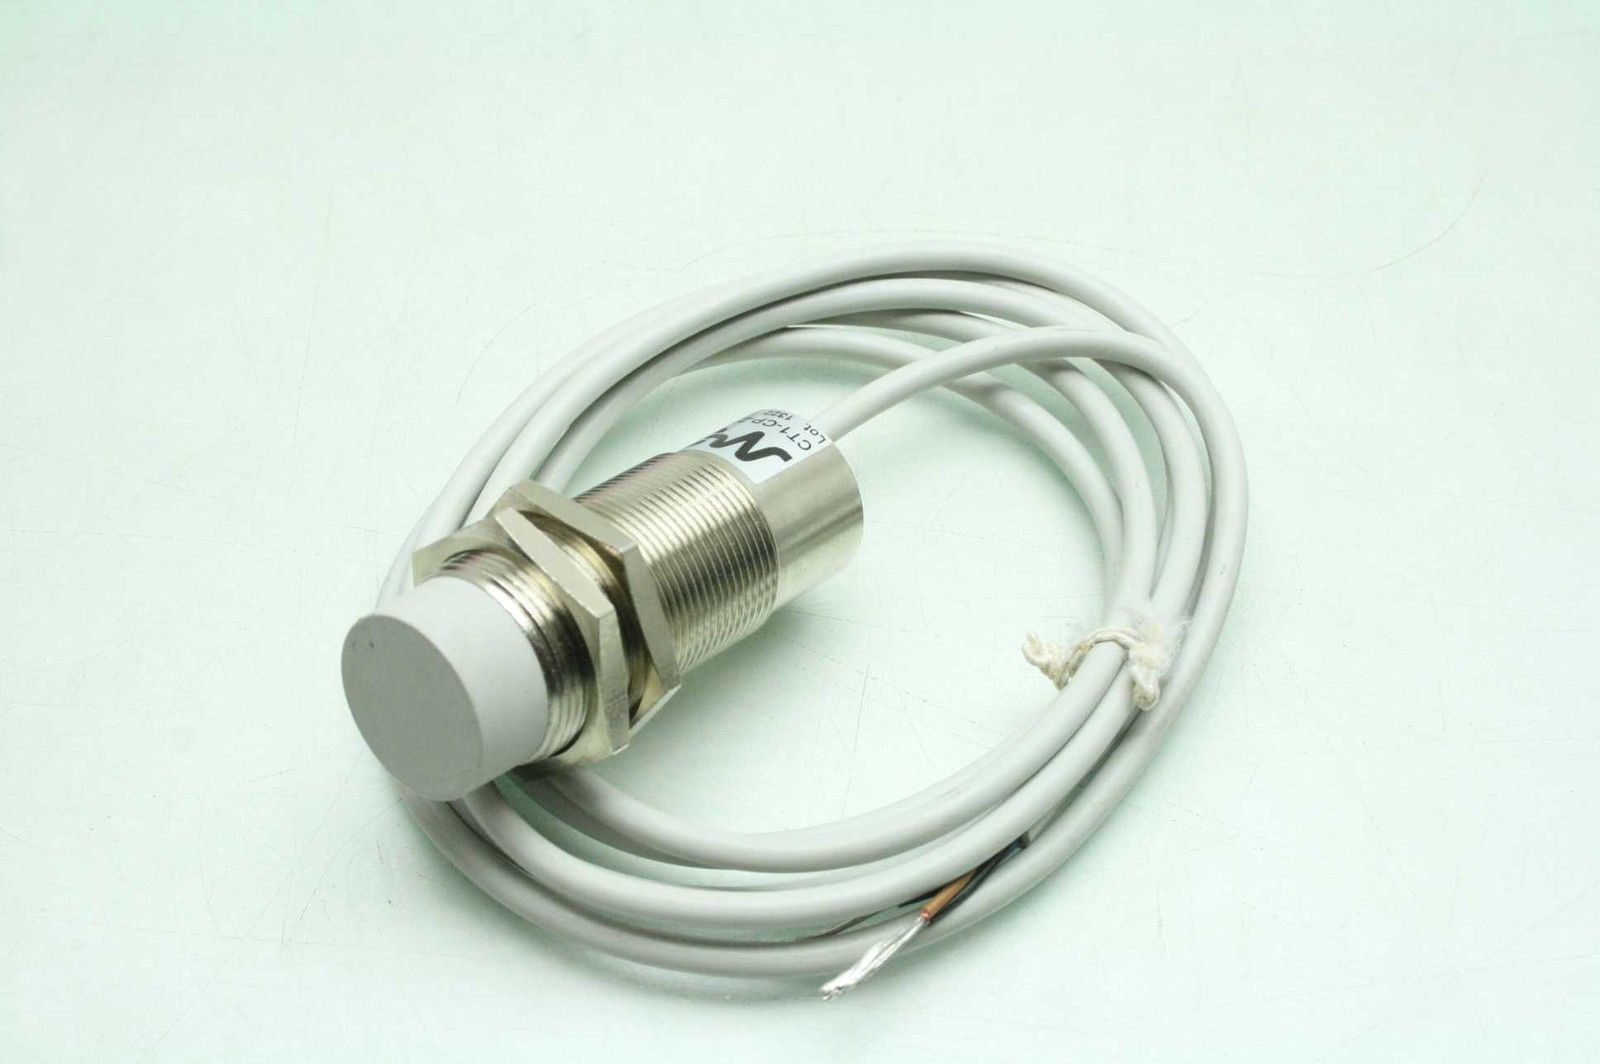 Automation Direct CT1-CP-2A Capacitive Proximity Sensor 20mm Detecting  Distance - Used